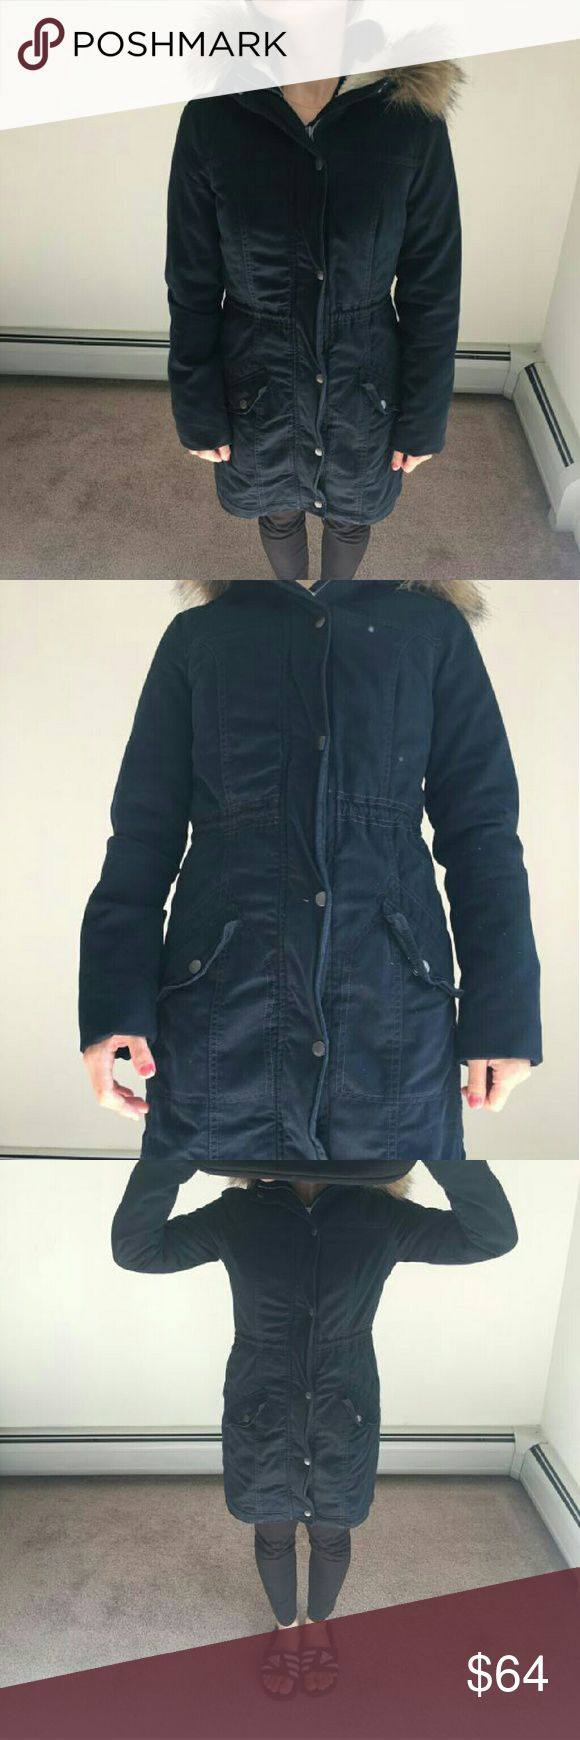 Hollister coat/jacket more pics about Hollister jacket it's navy Hollister Jackets & Coats